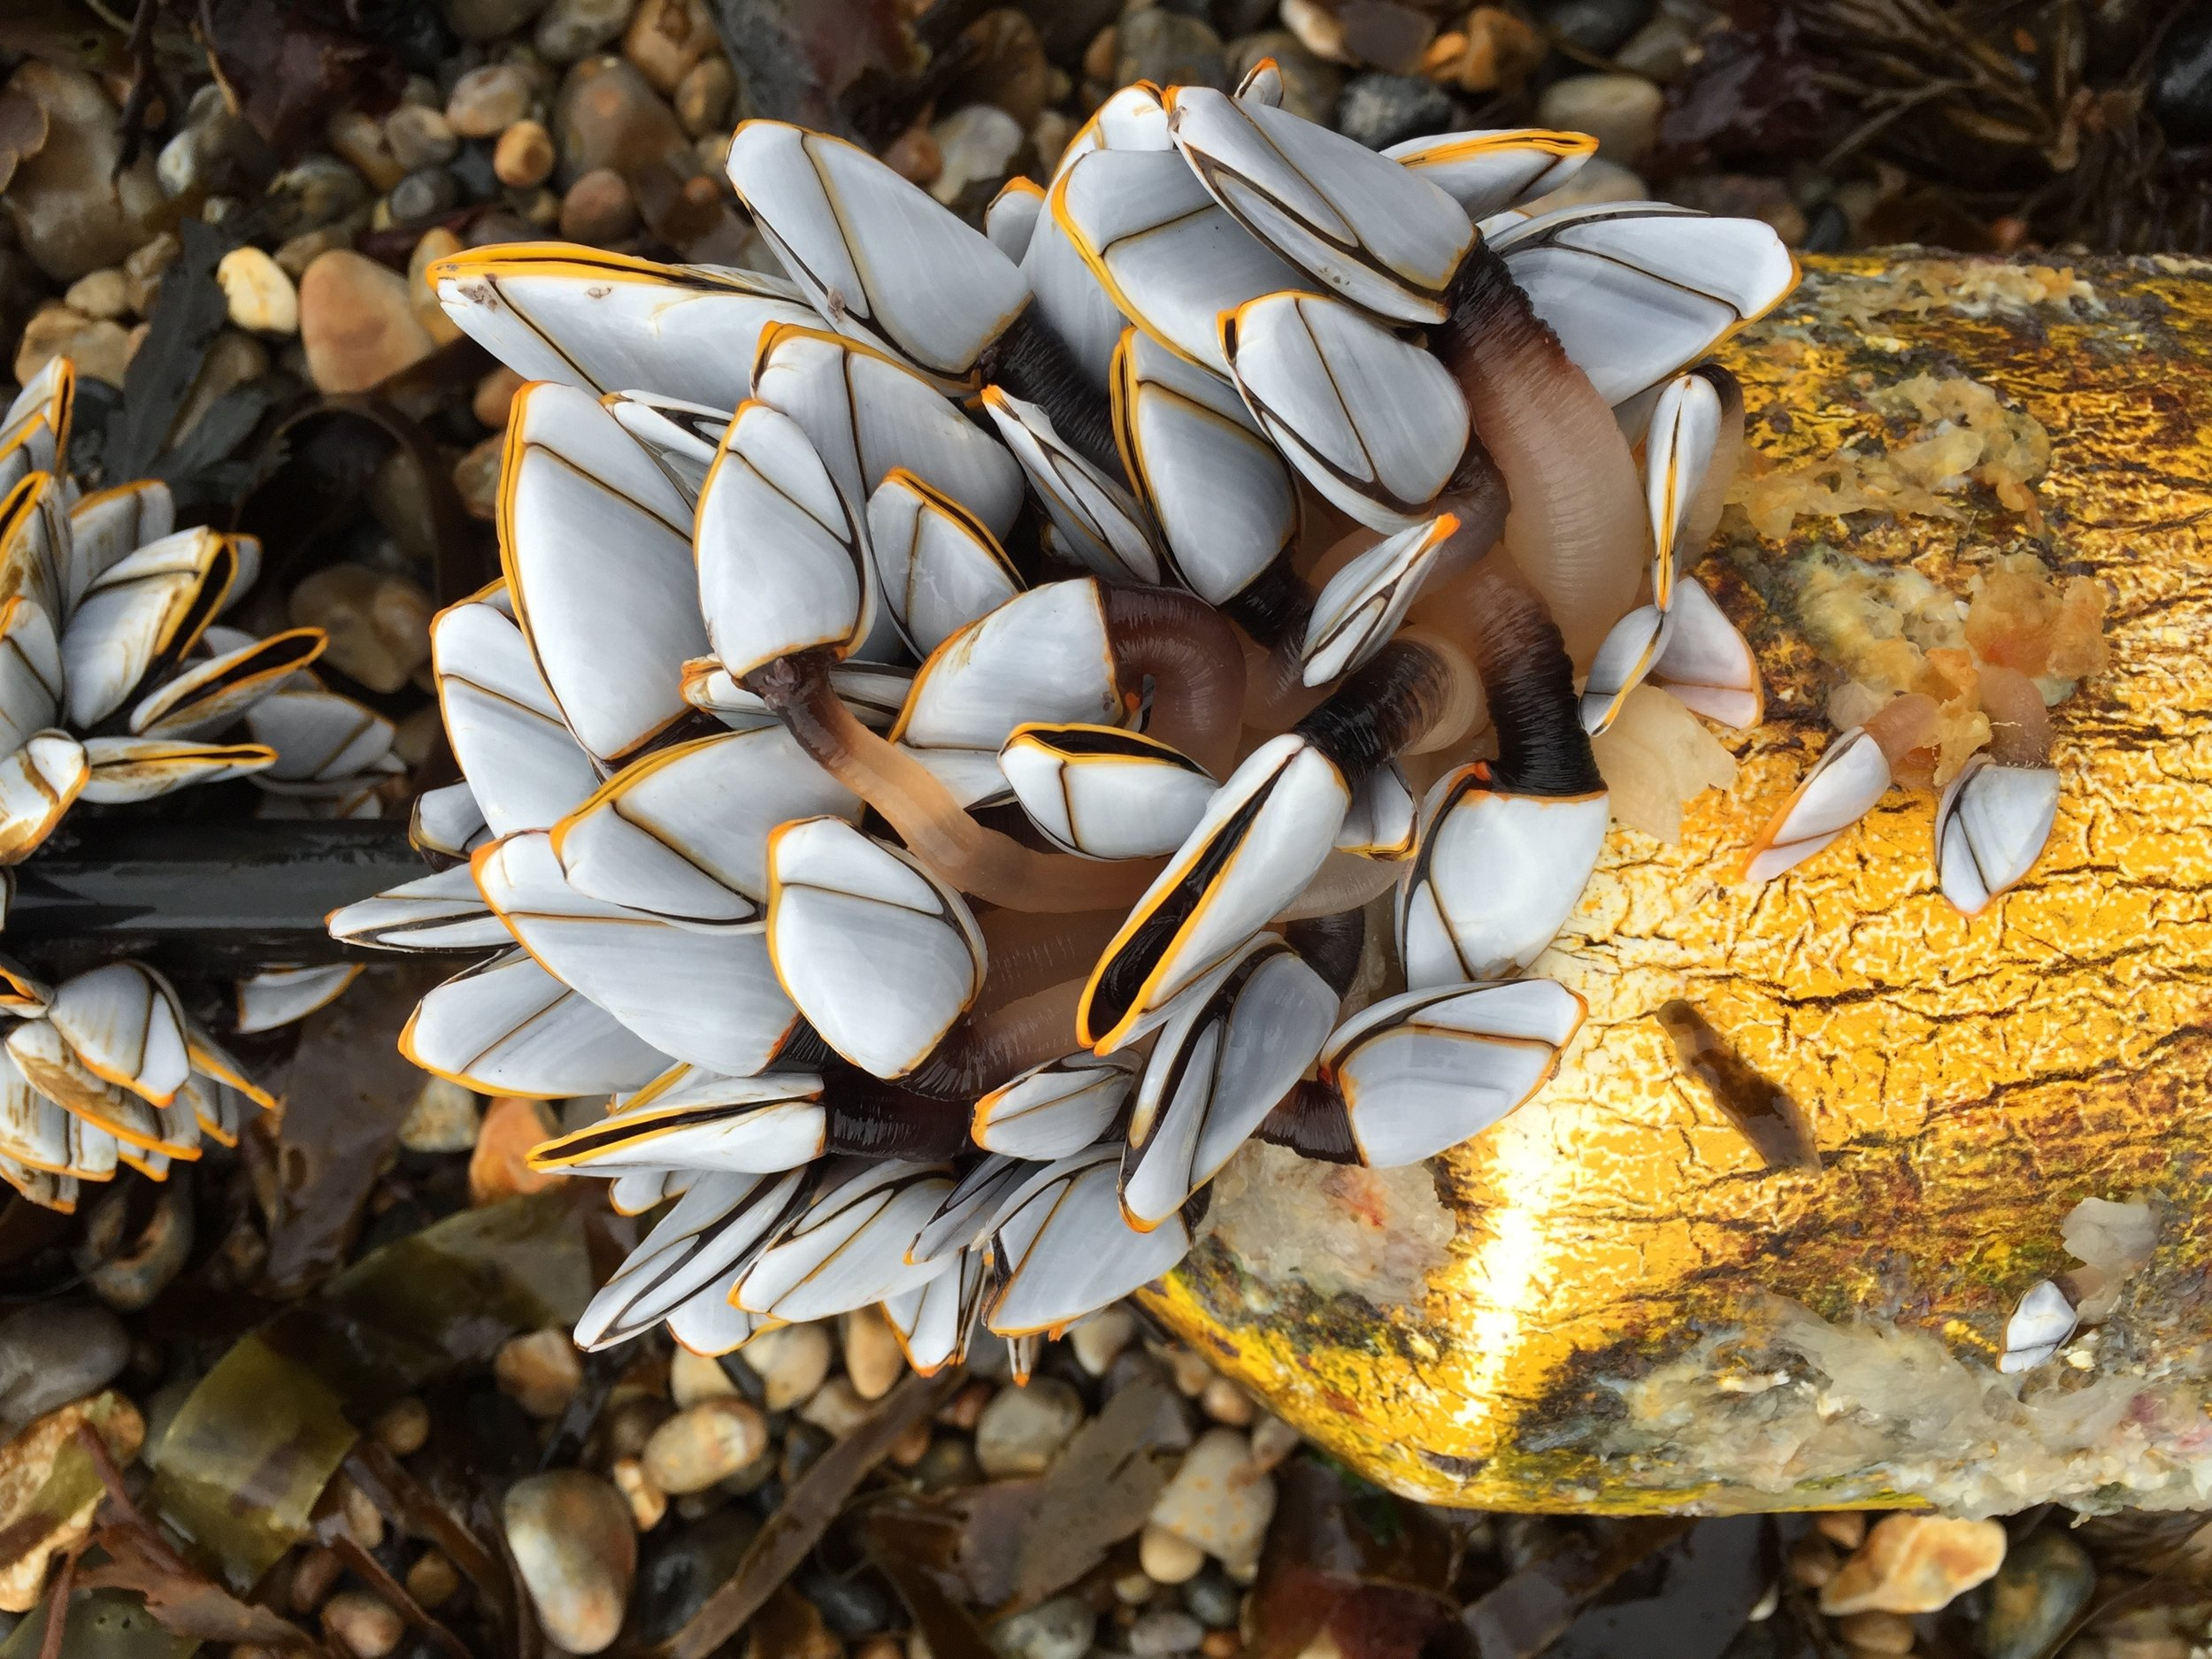 Goose Barnacles, 2015, digital photograph